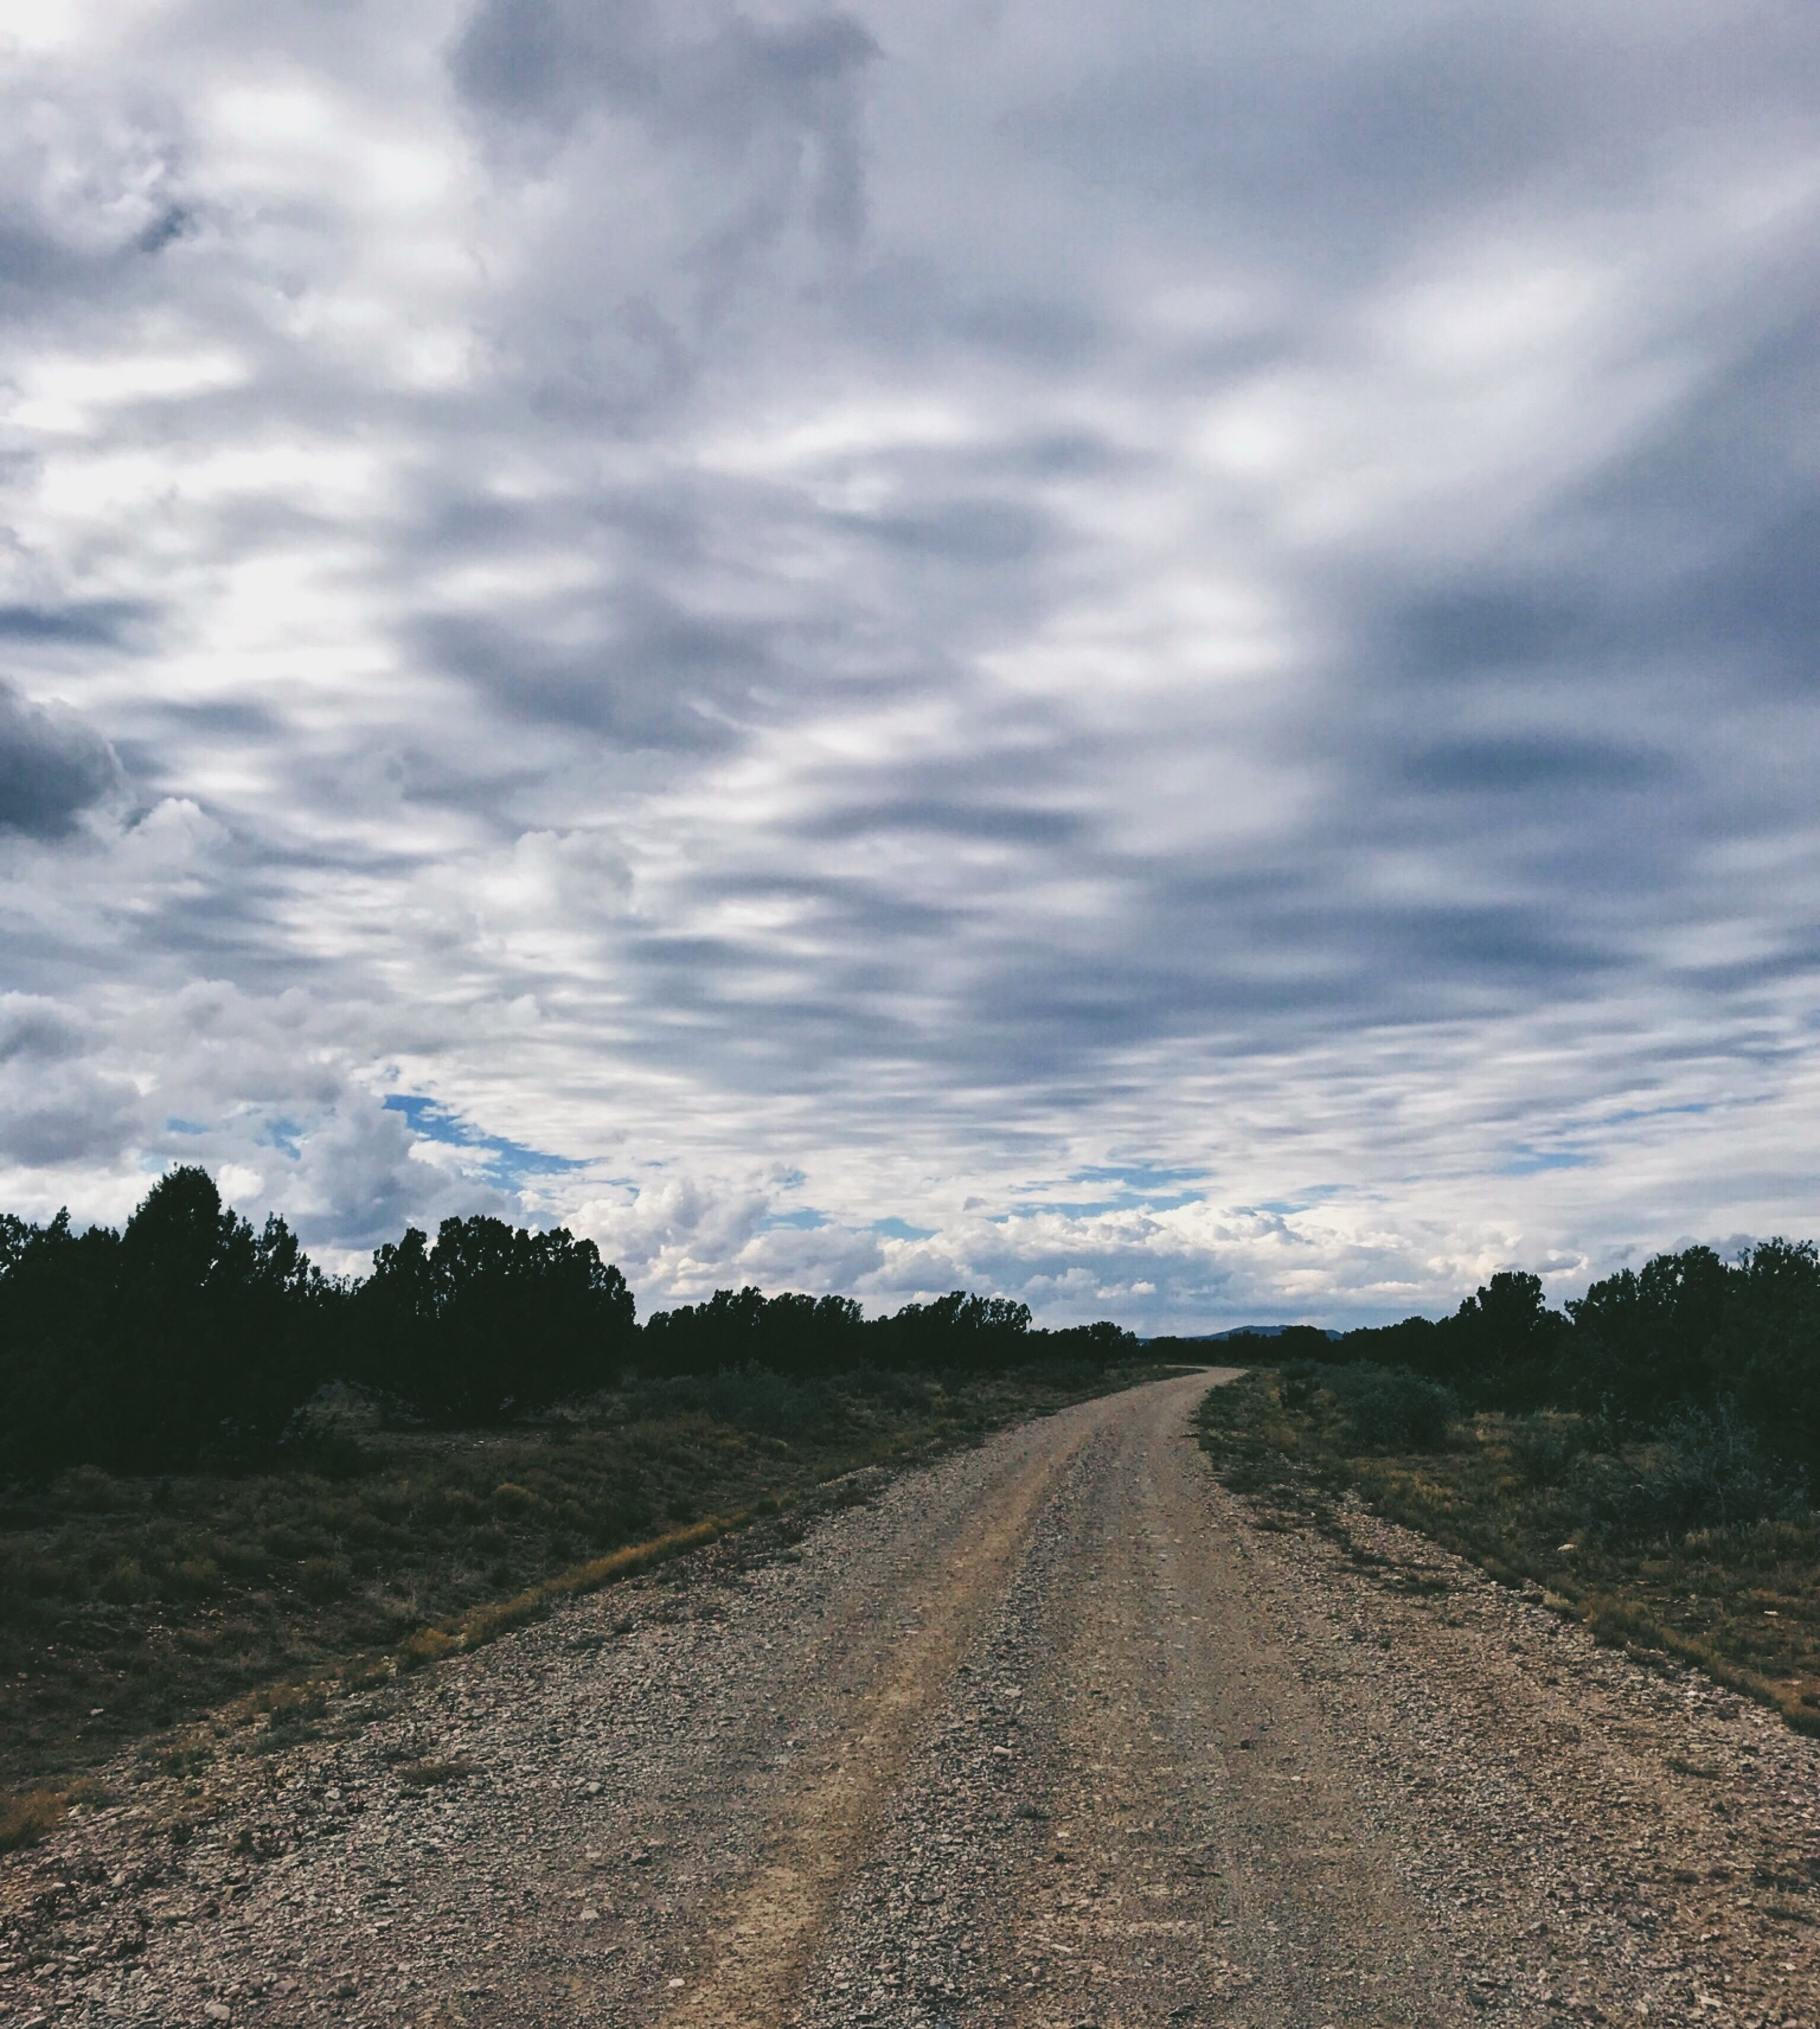 the rutted road the pathway my ceiling is the clouds hanging low